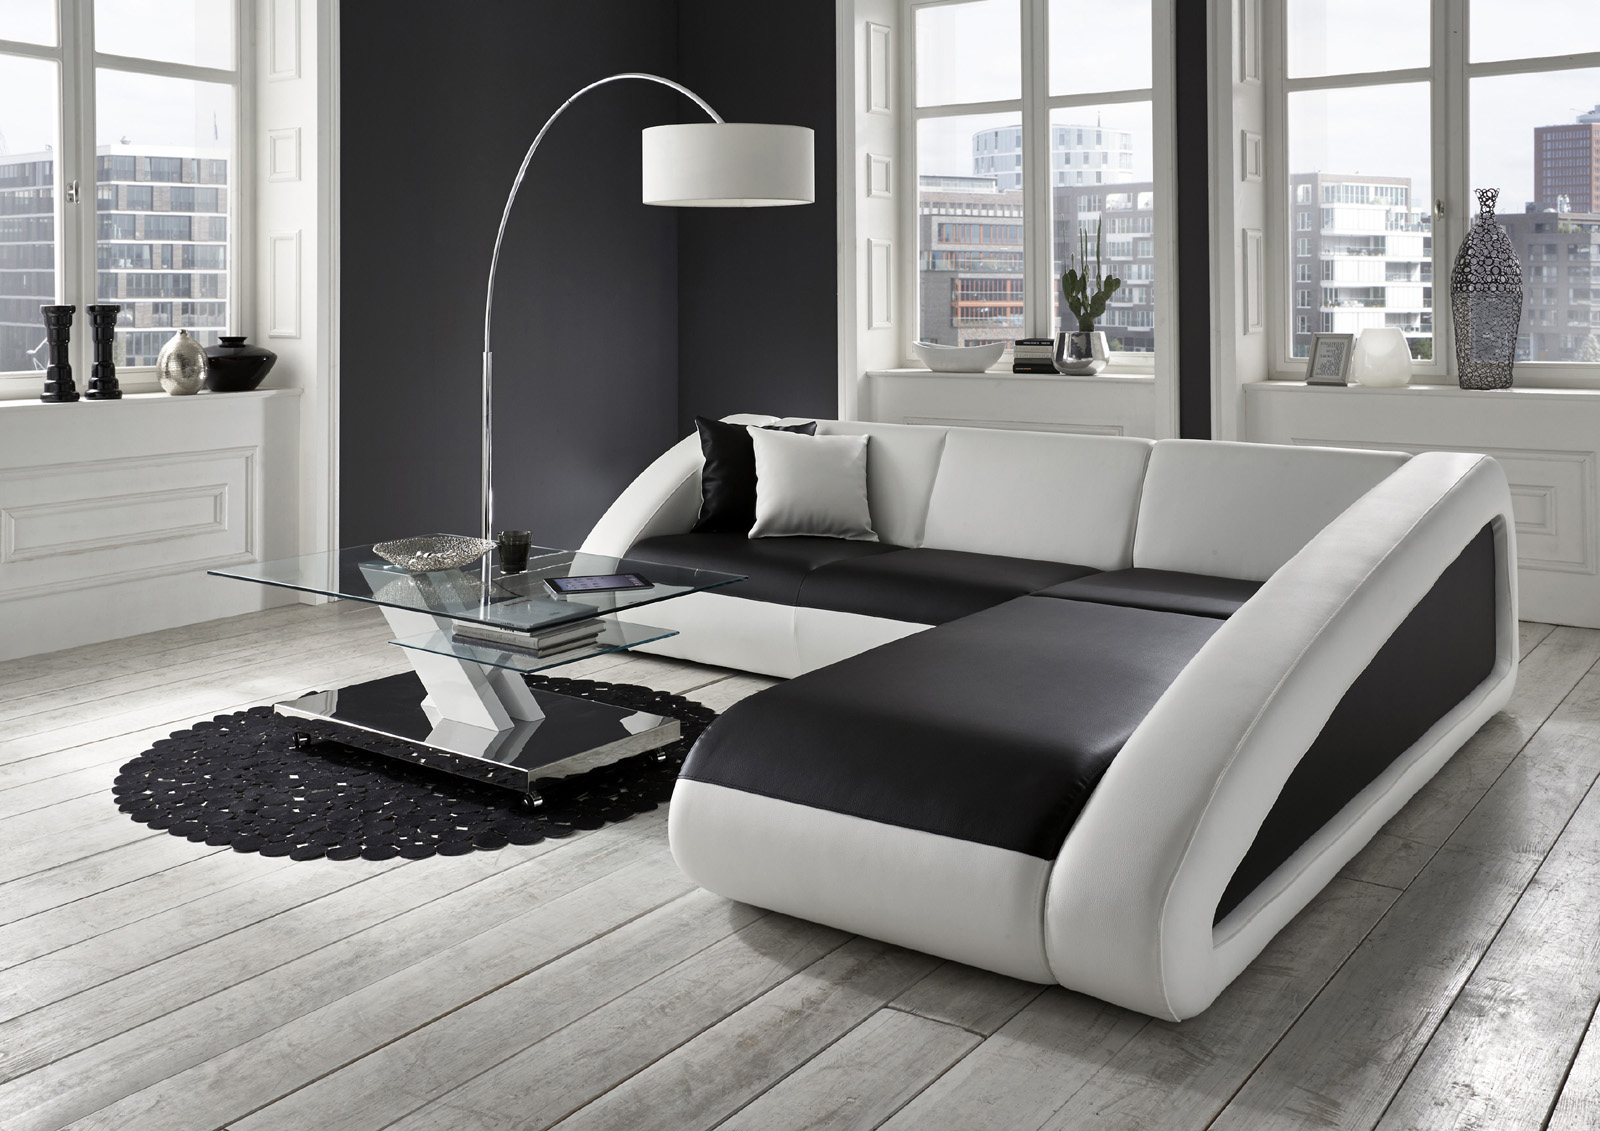 sam ecksofa schwarz wei ciao polsterecke 270 x 250 cm auf lager. Black Bedroom Furniture Sets. Home Design Ideas